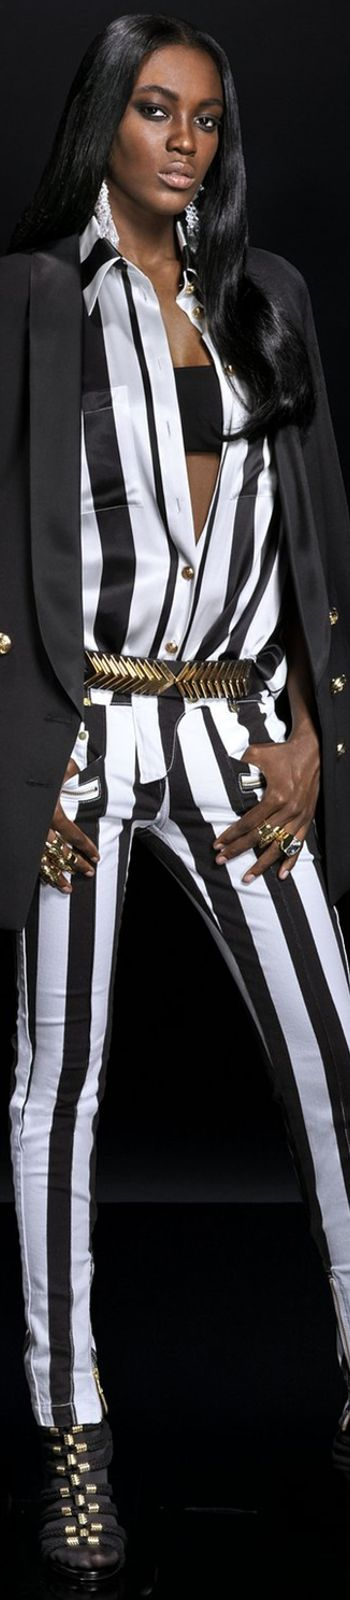 BALMAIN x H&M Collaboration...beautiful black and white striped blouse and pants.